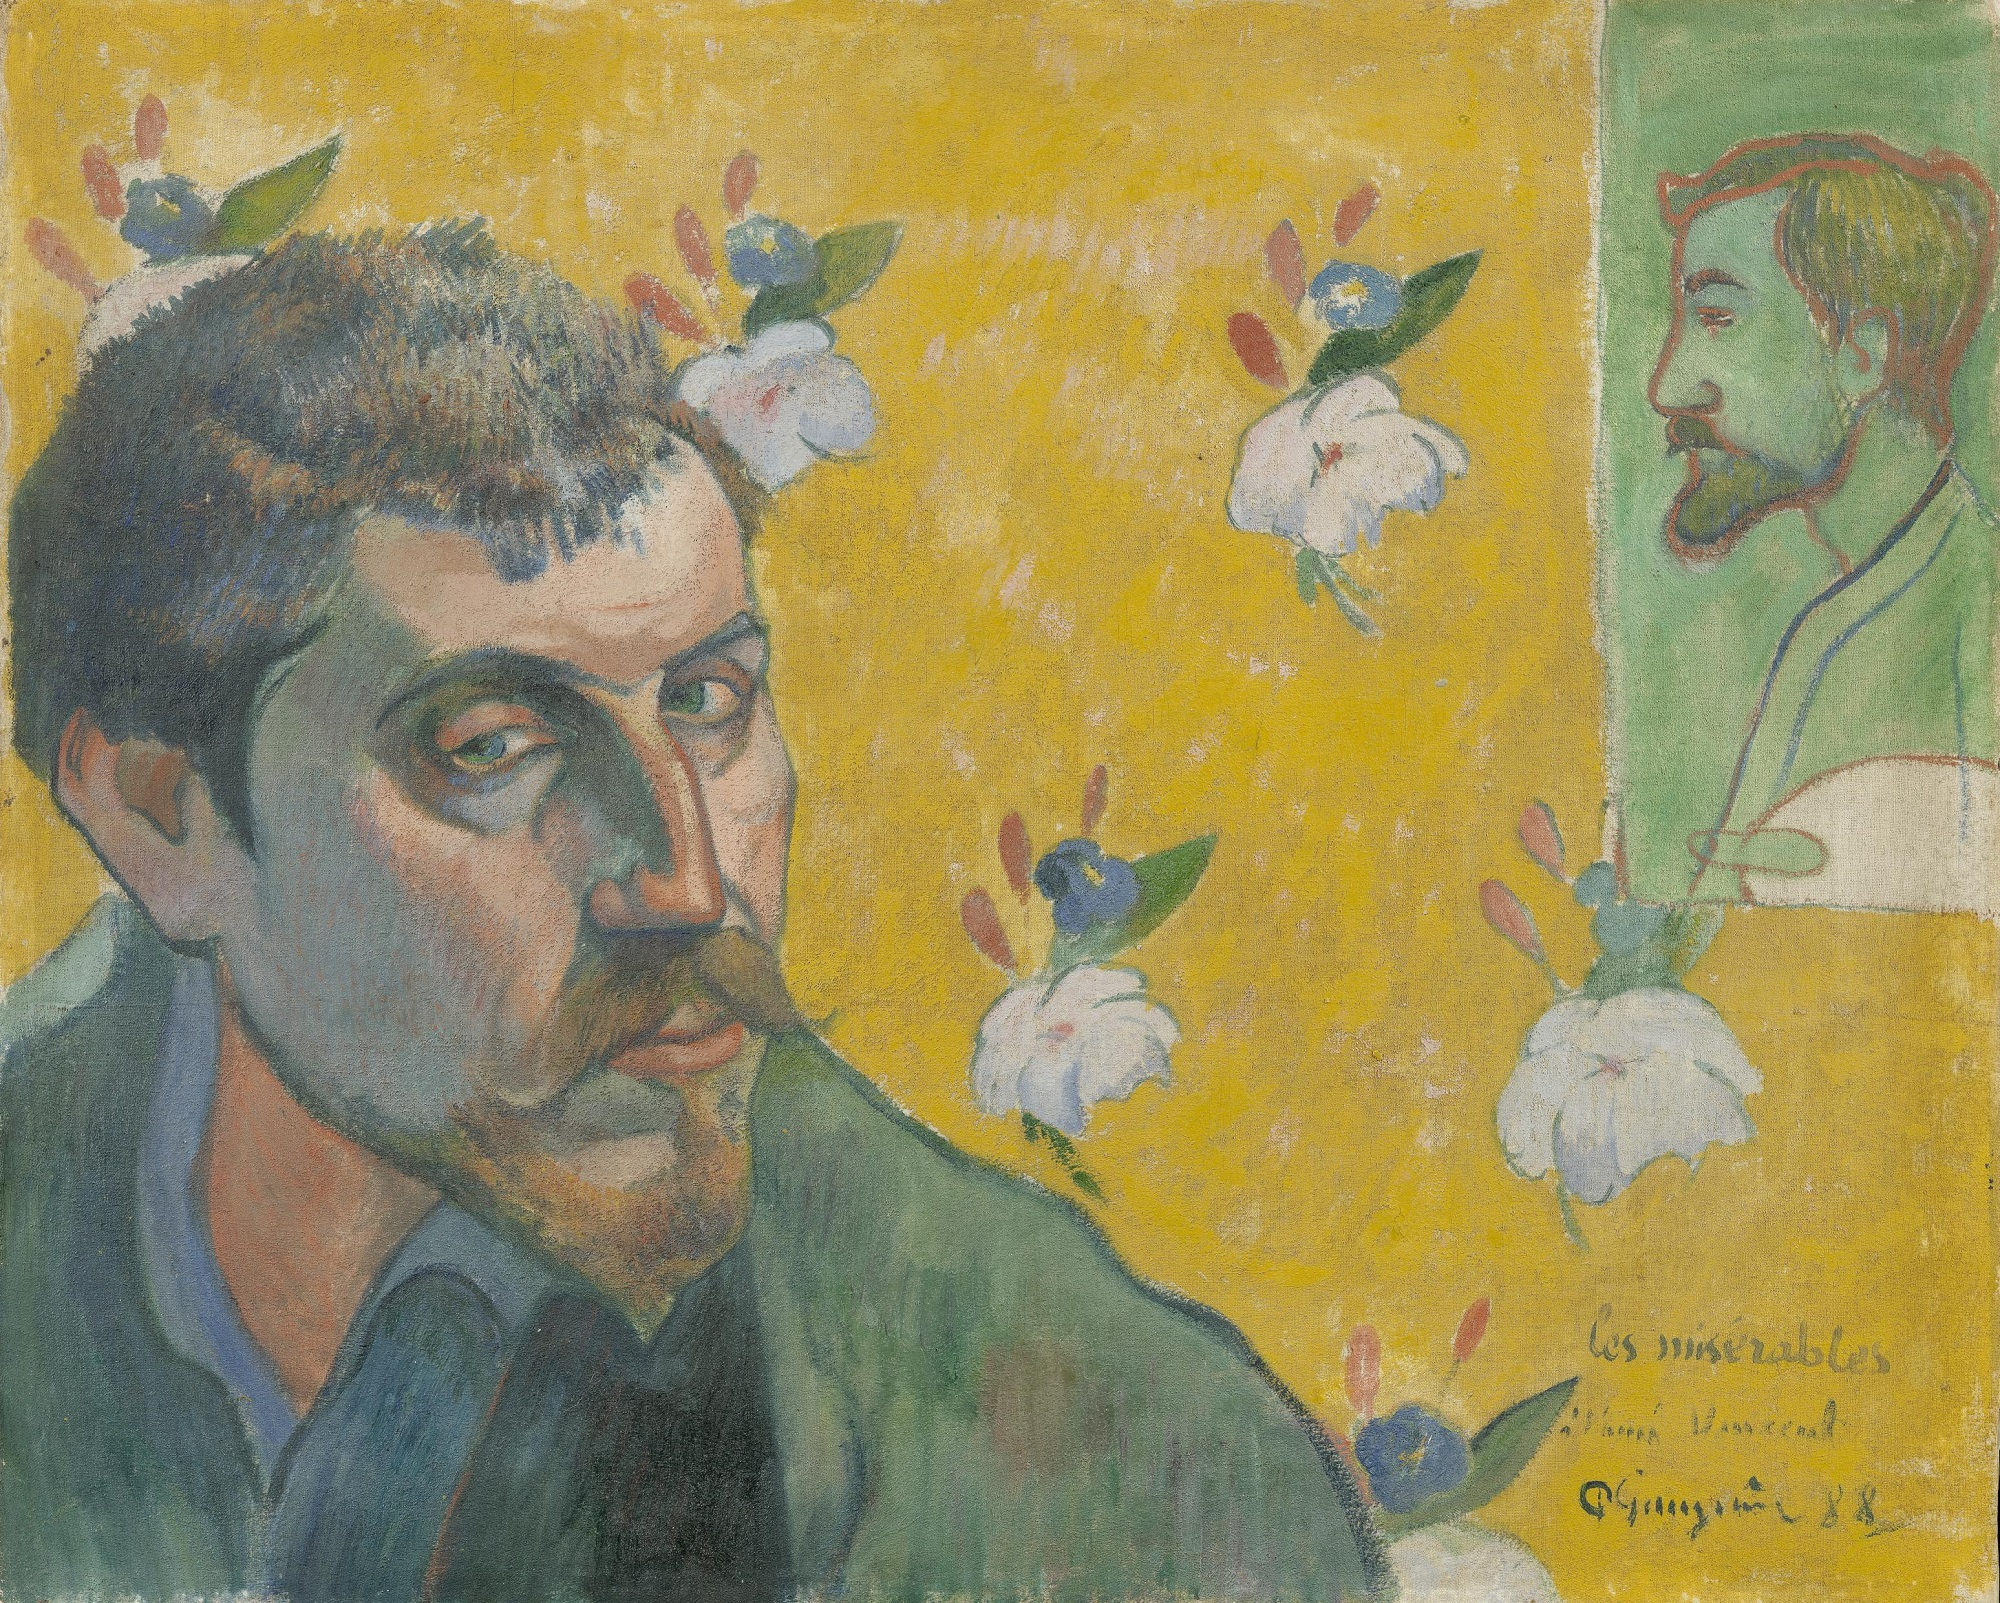 Self-Portrait Dedicated to Vincent van Gogh. Les Miserables 1888